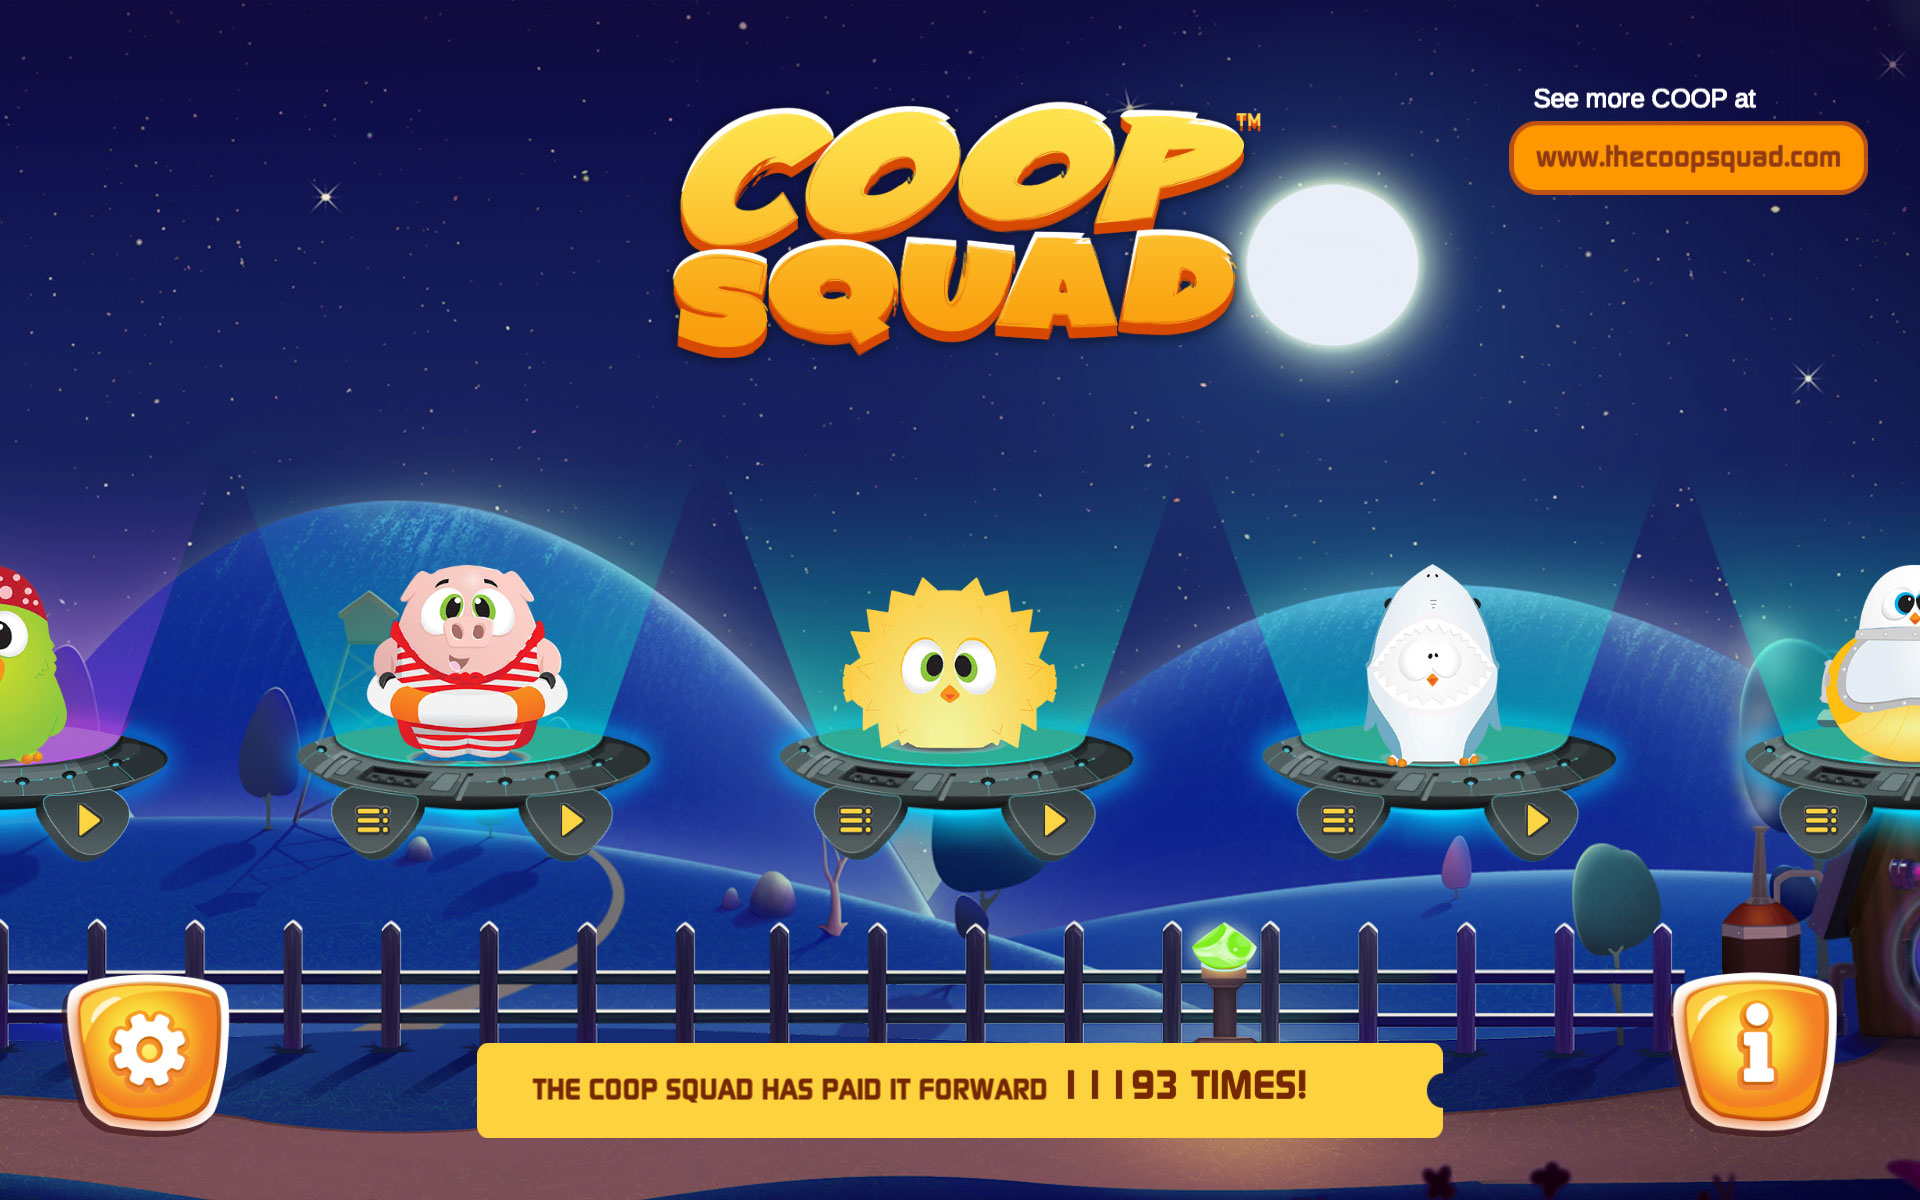 Select one of several Coop Squad characters